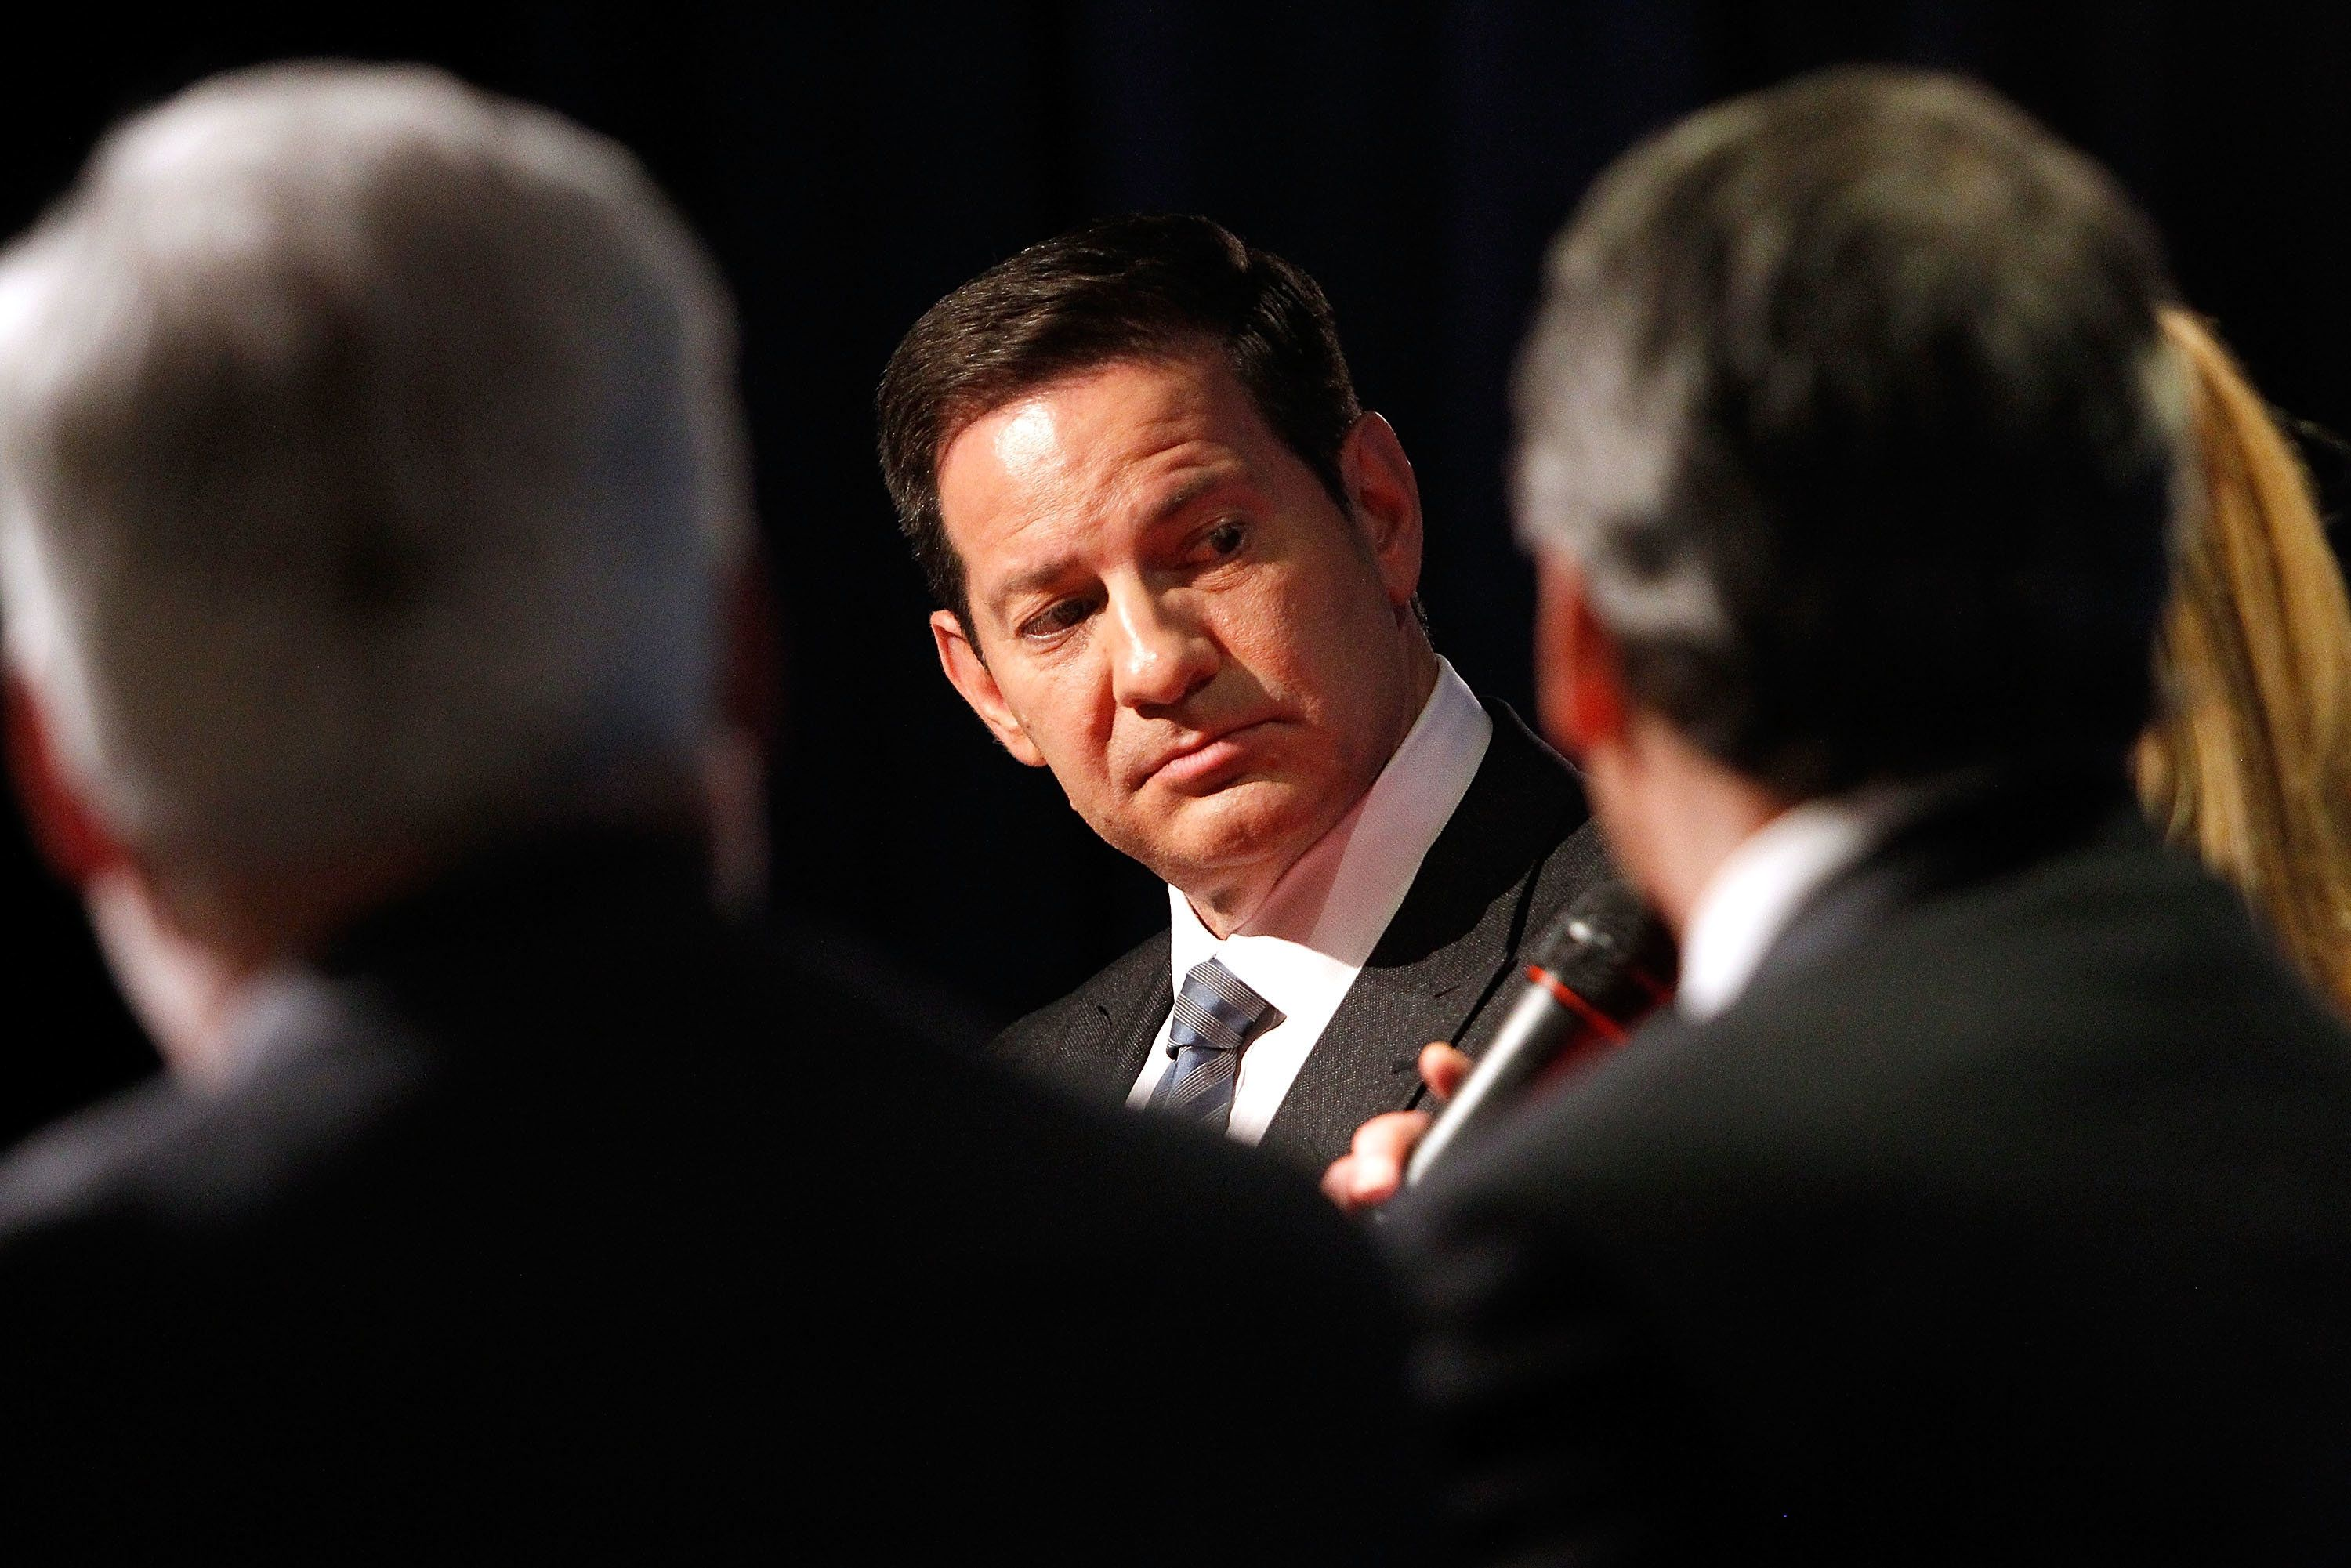 WASHINGTON, DC - MAY 03:  Mark Halperin (C) from Showtime's 'The CircusÕ participates in a panel discussion at the Showtime-presented finale reception and discusson of the second season of THE CIRCUS: INSIDE THE BIGGEST STORY ON EARTH at The Newseum on May 3, 2017 in Washington, DC.  (Photo by Paul Morigi/Getty Images for Showtime)